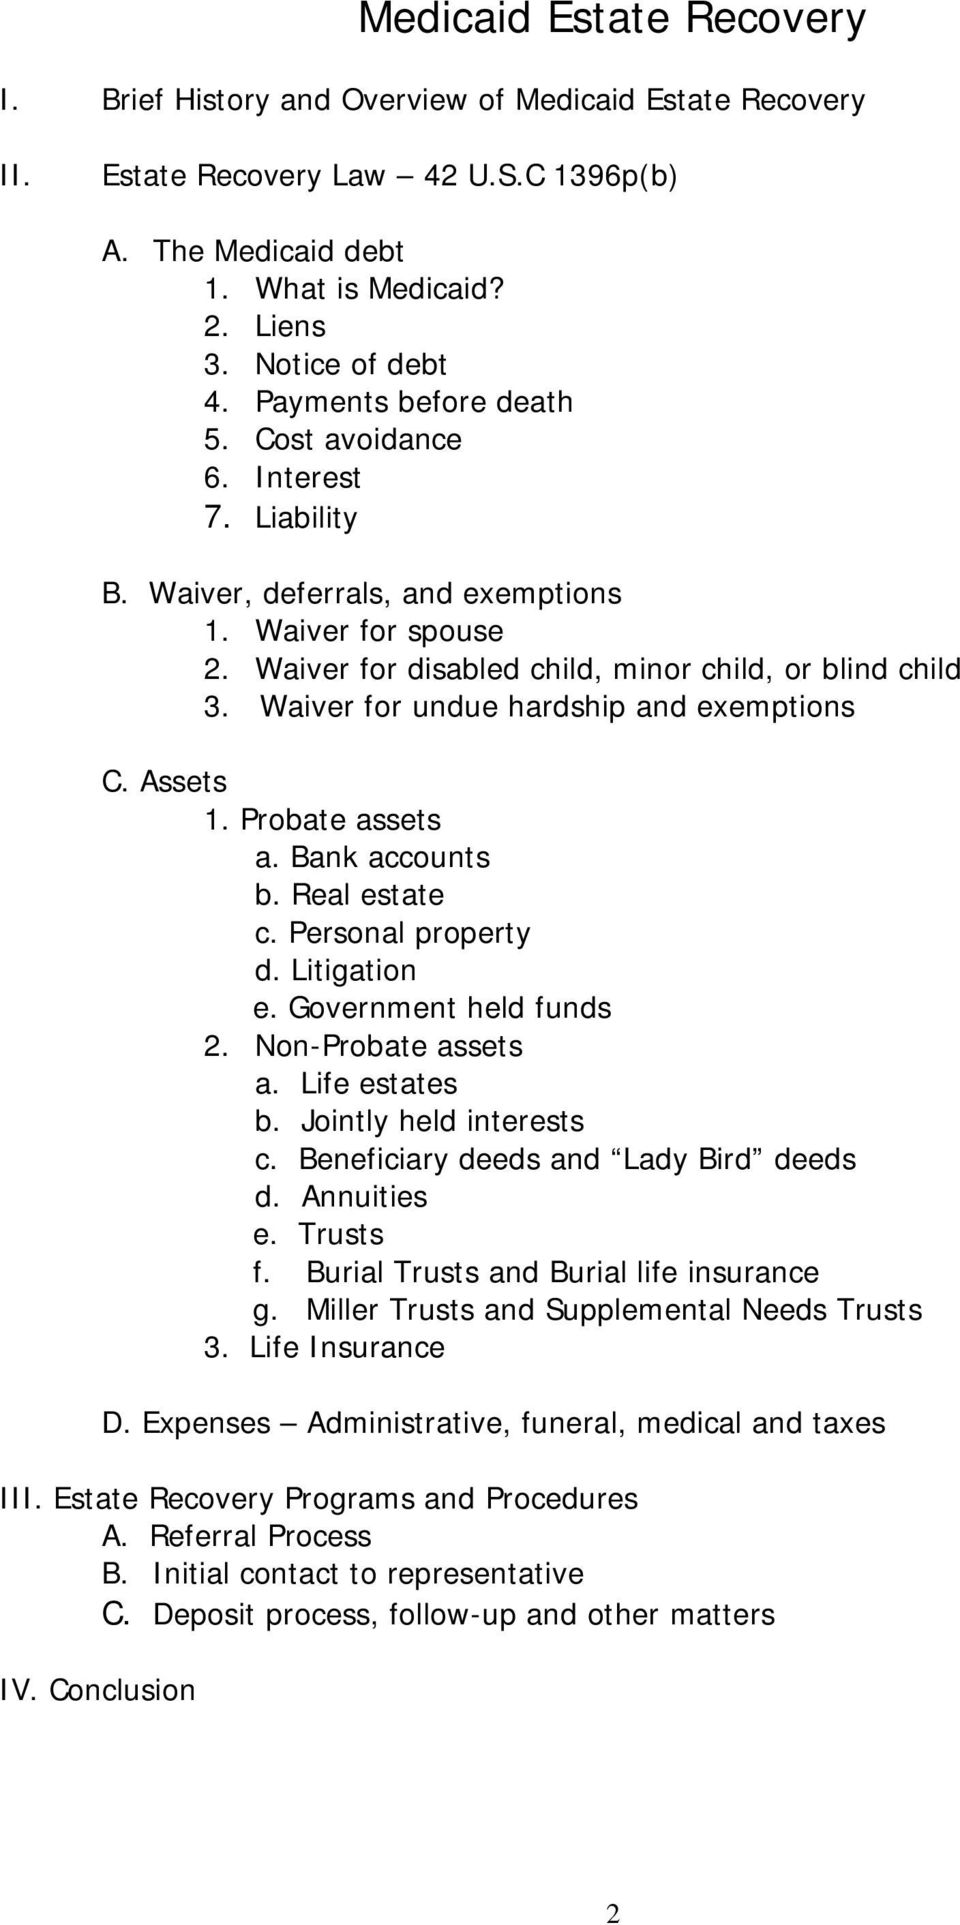 Waiver for undue hardship and exemptions C. Assets 1. Probate assets a. Bank accounts b. Real estate c. Personal property d. Litigation e. Government held funds 2. Non-Probate assets a.